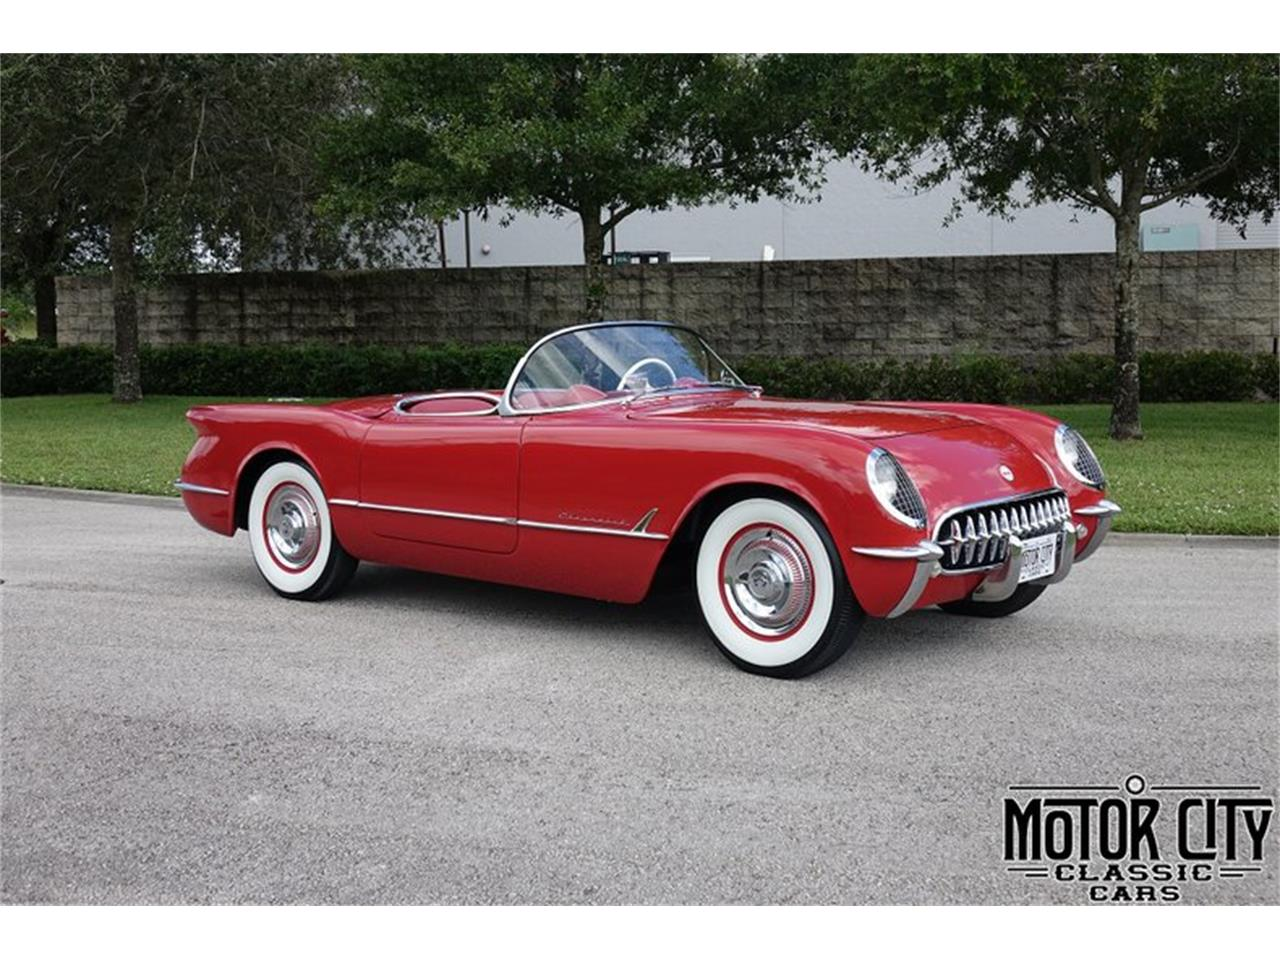 1954 Chevrolet Corvette (CC-1232305) for sale in Vero Beach, Florida